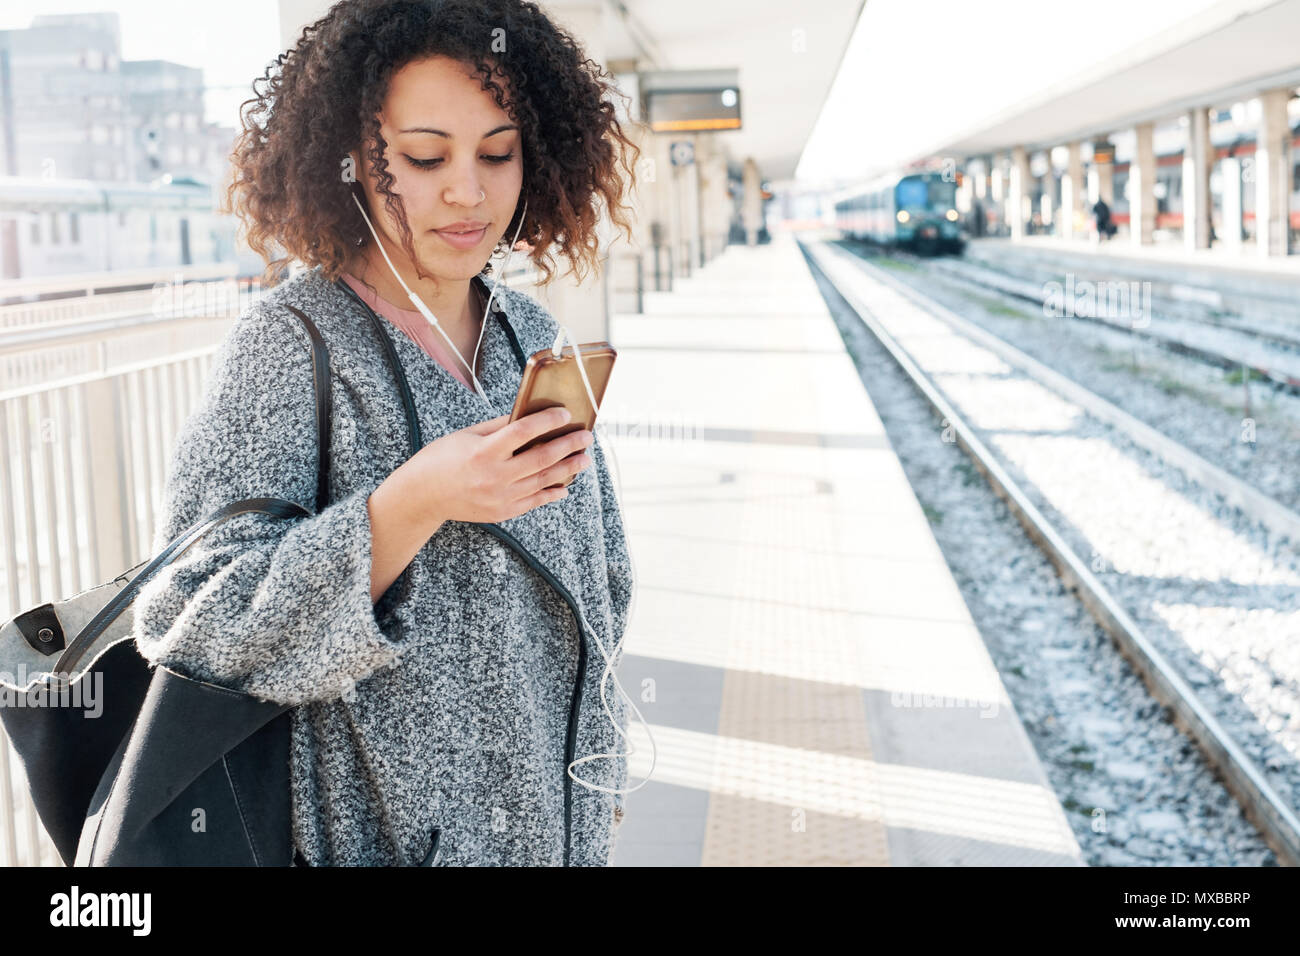 Young black woman waiting for the train on station platform - Stock Image